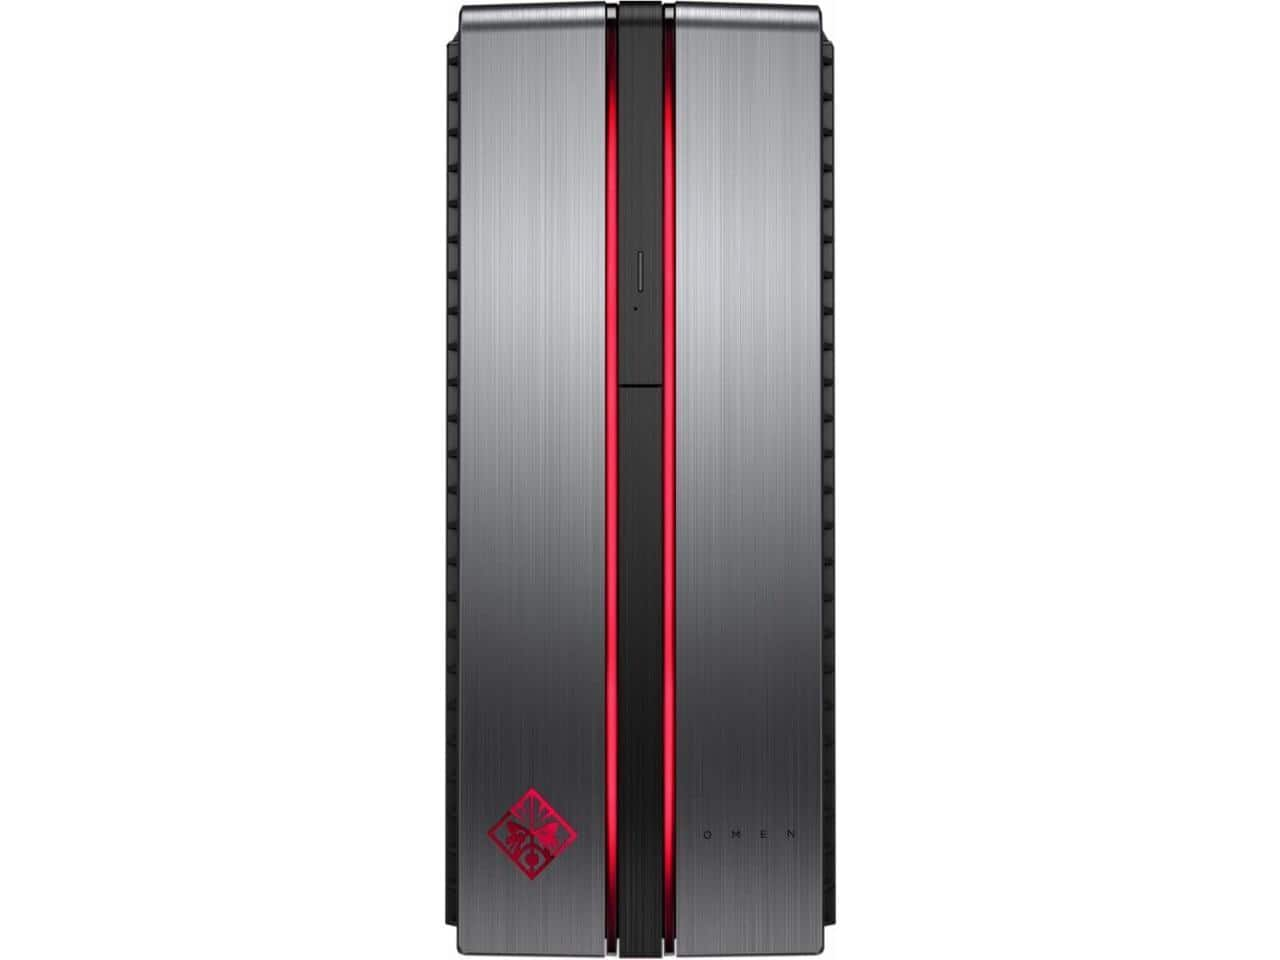 899 @ NewEgg + 50 NE GC  - HP OMEN 870-244 Desktop Computer Intel Core i7 16GB Memory NVIDIA GeForce GTX 1070 1TB Hard Drive